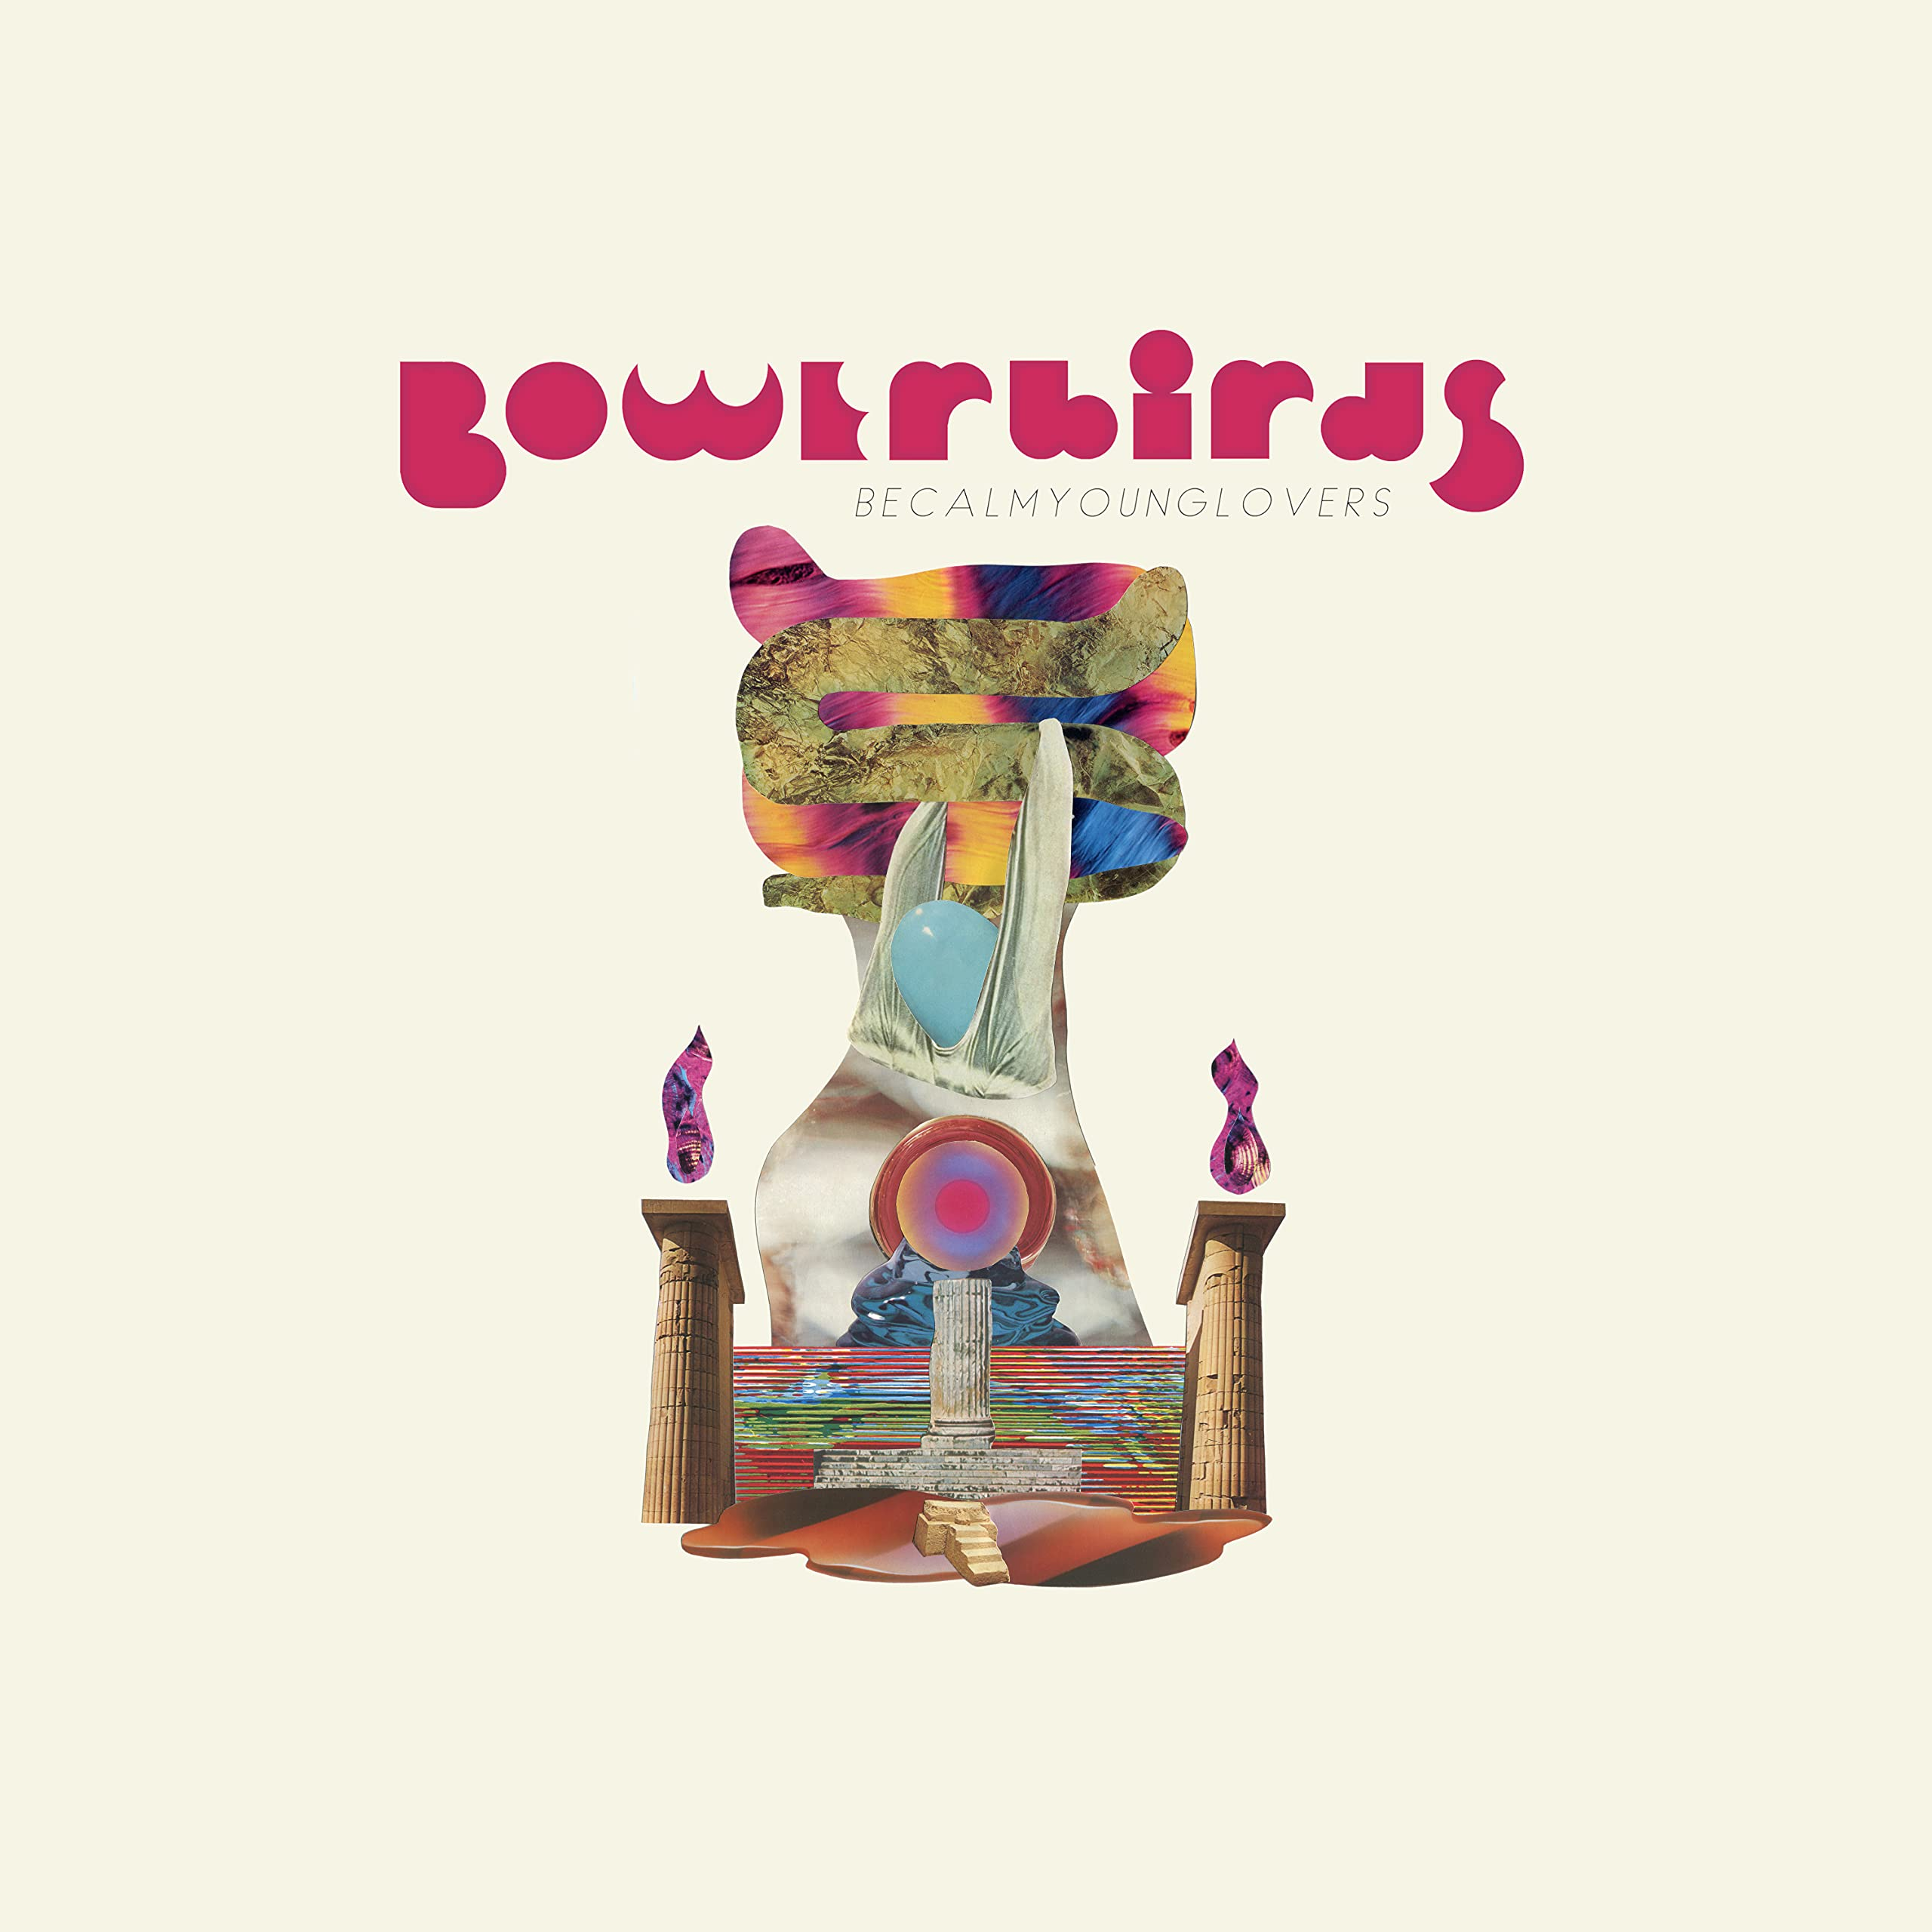 Bowerbirds - Becalmyounglovers (2021) [FLAC] Download